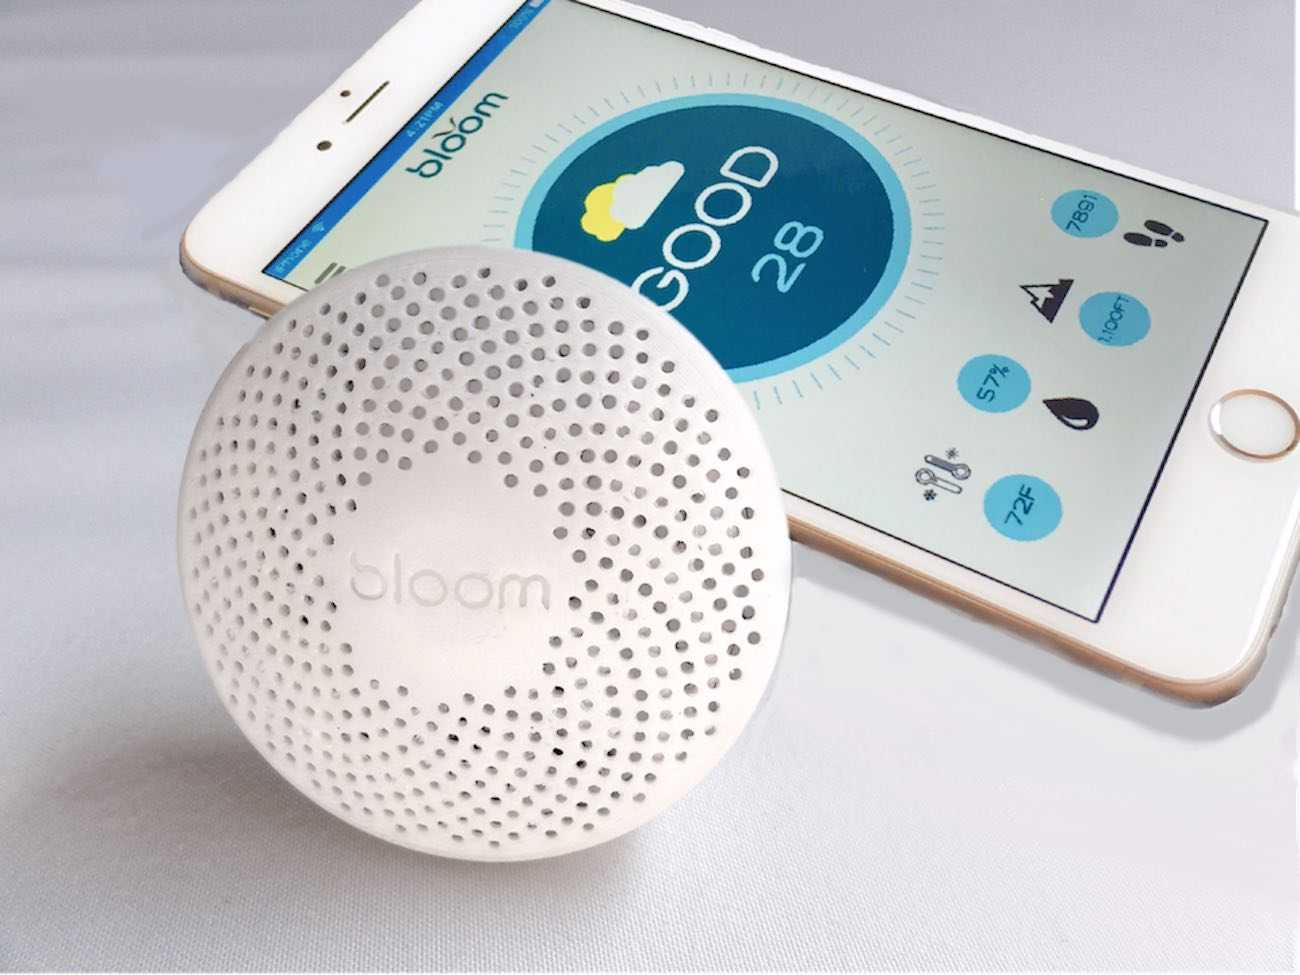 Bloom Portable Air Quality Monitor Lying Side by Side with a Smartphone